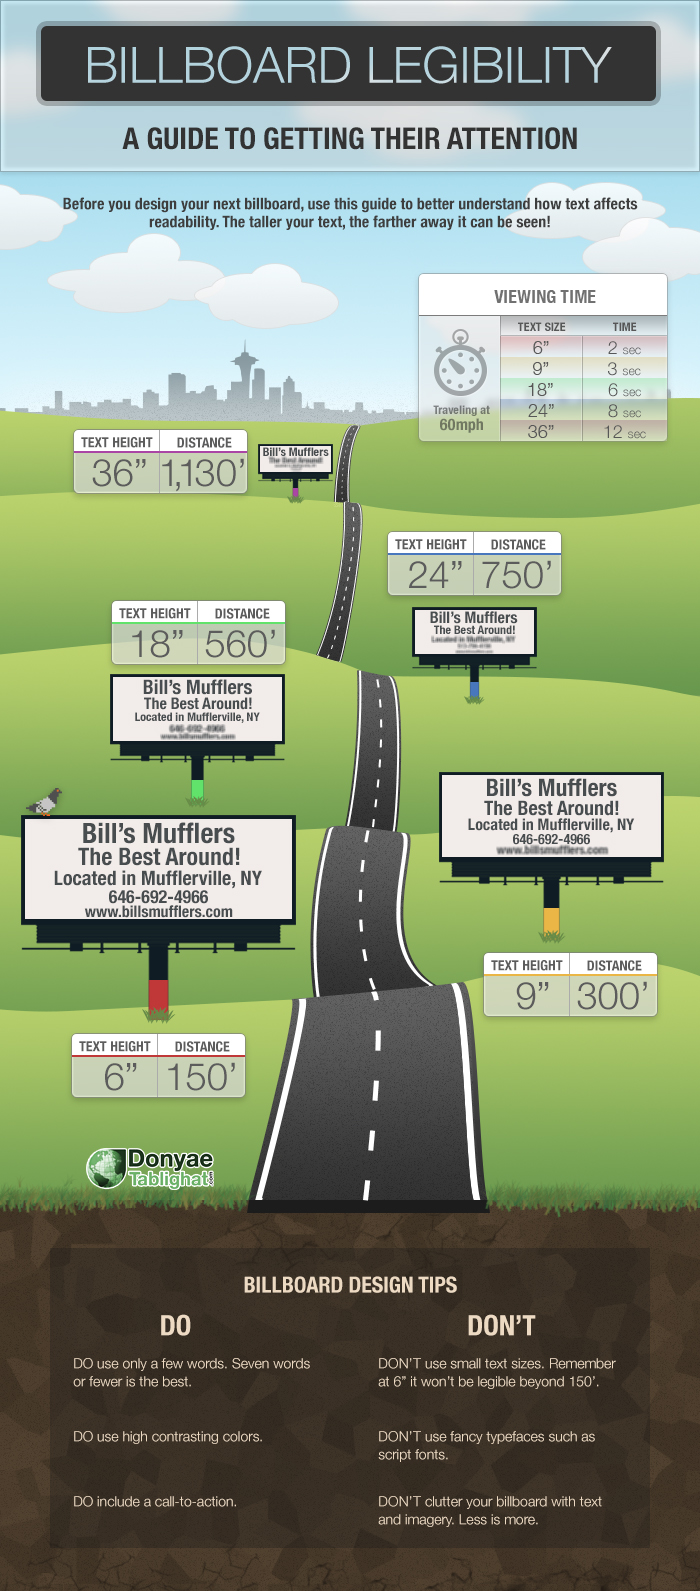 billboard-legibility-infographic-final